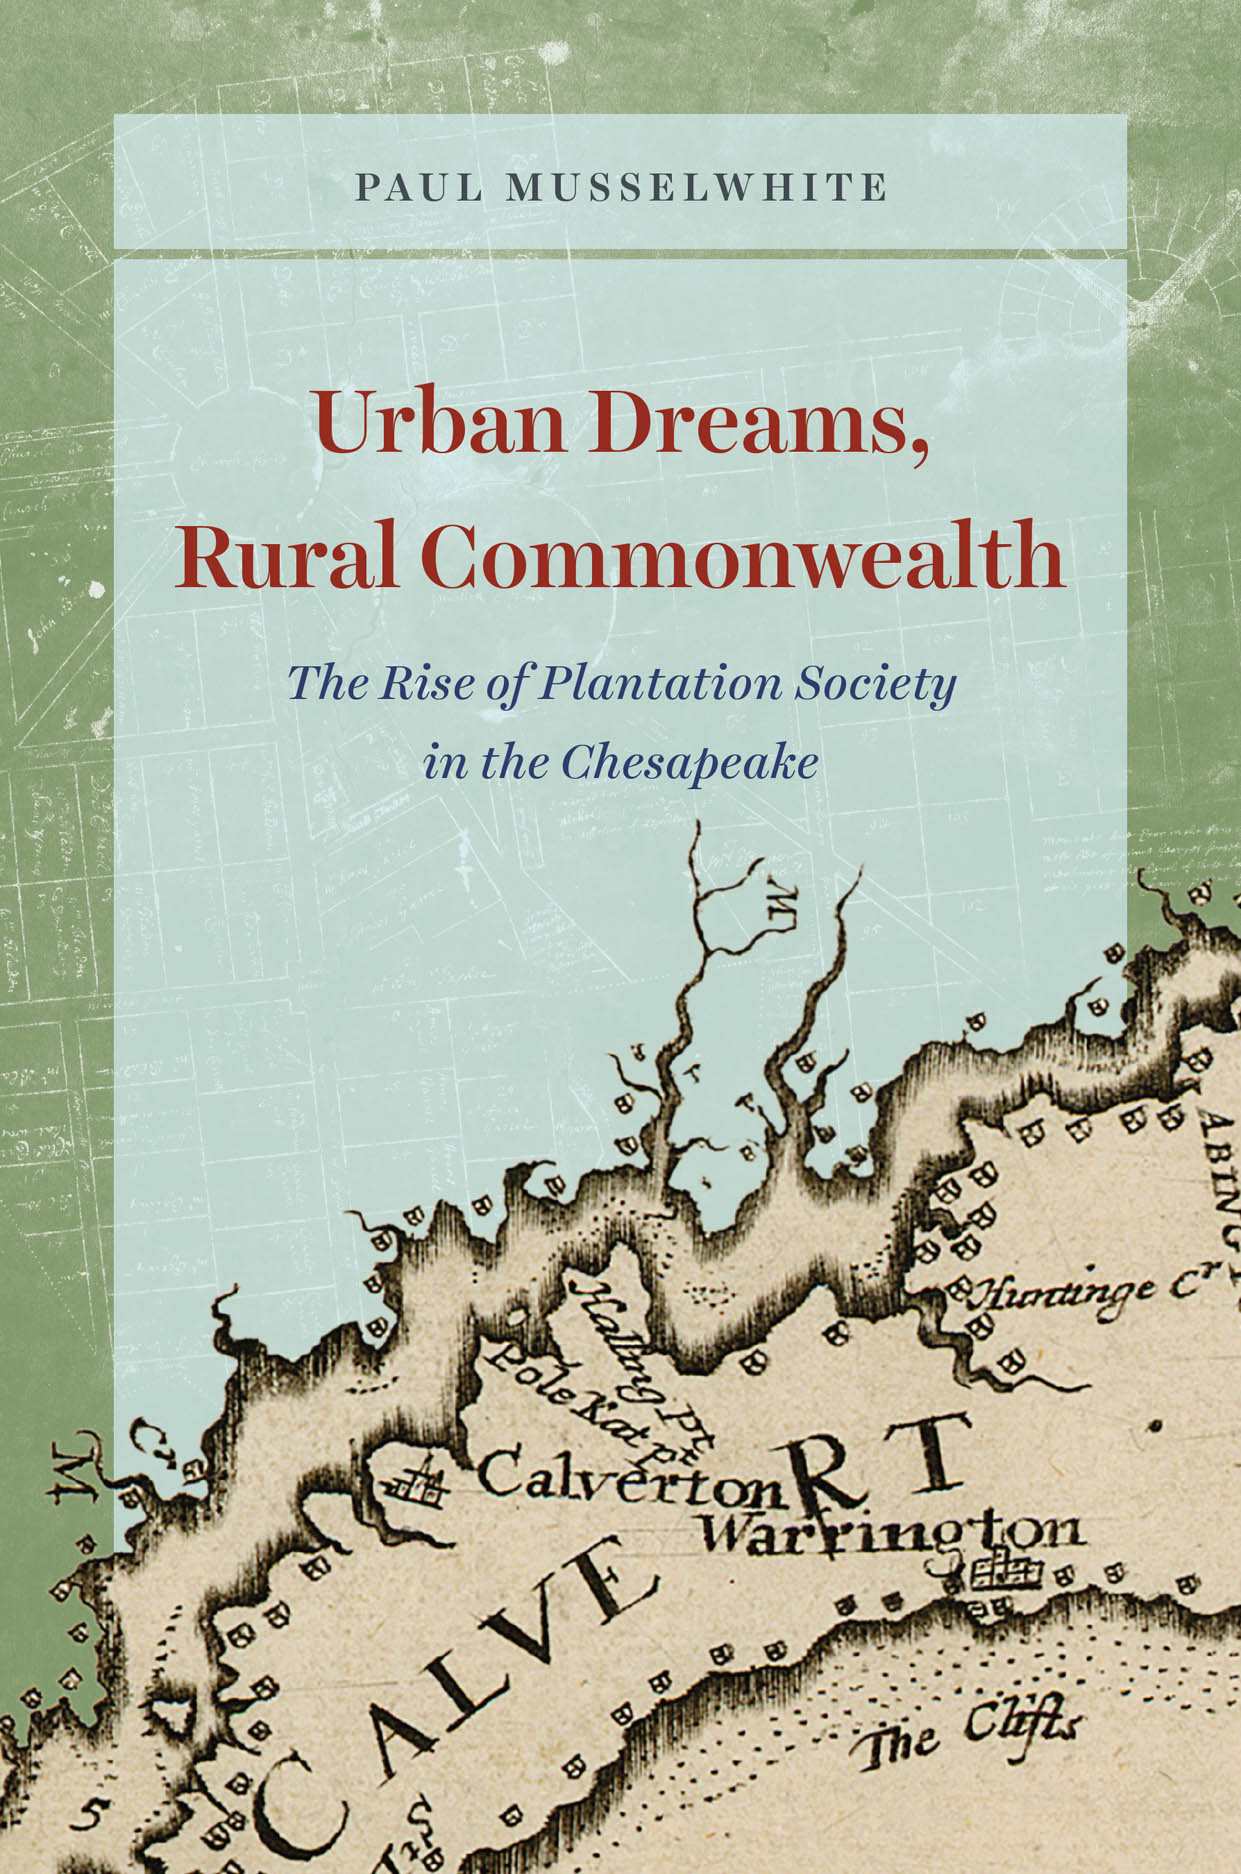 Urban Dreams, Rural Commonwealth: The Rise of Plantation Society in the Chesapeake